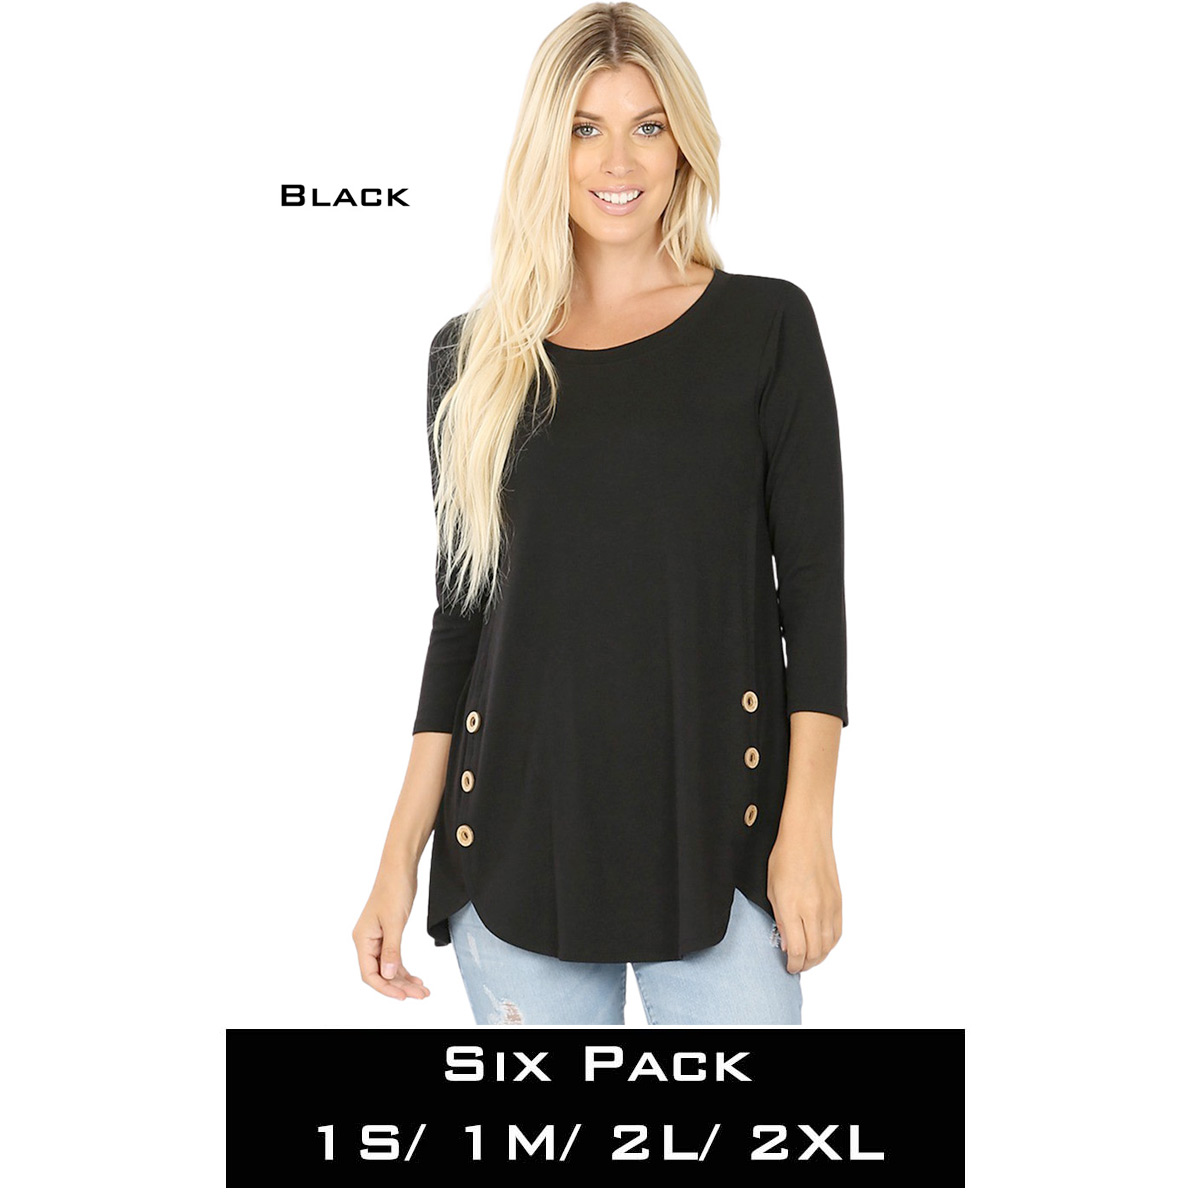 BLACK (SIX PACK) 3/4 Sleeve Side Wood Buttons Top 2032(1S,1M,2L,2XL)